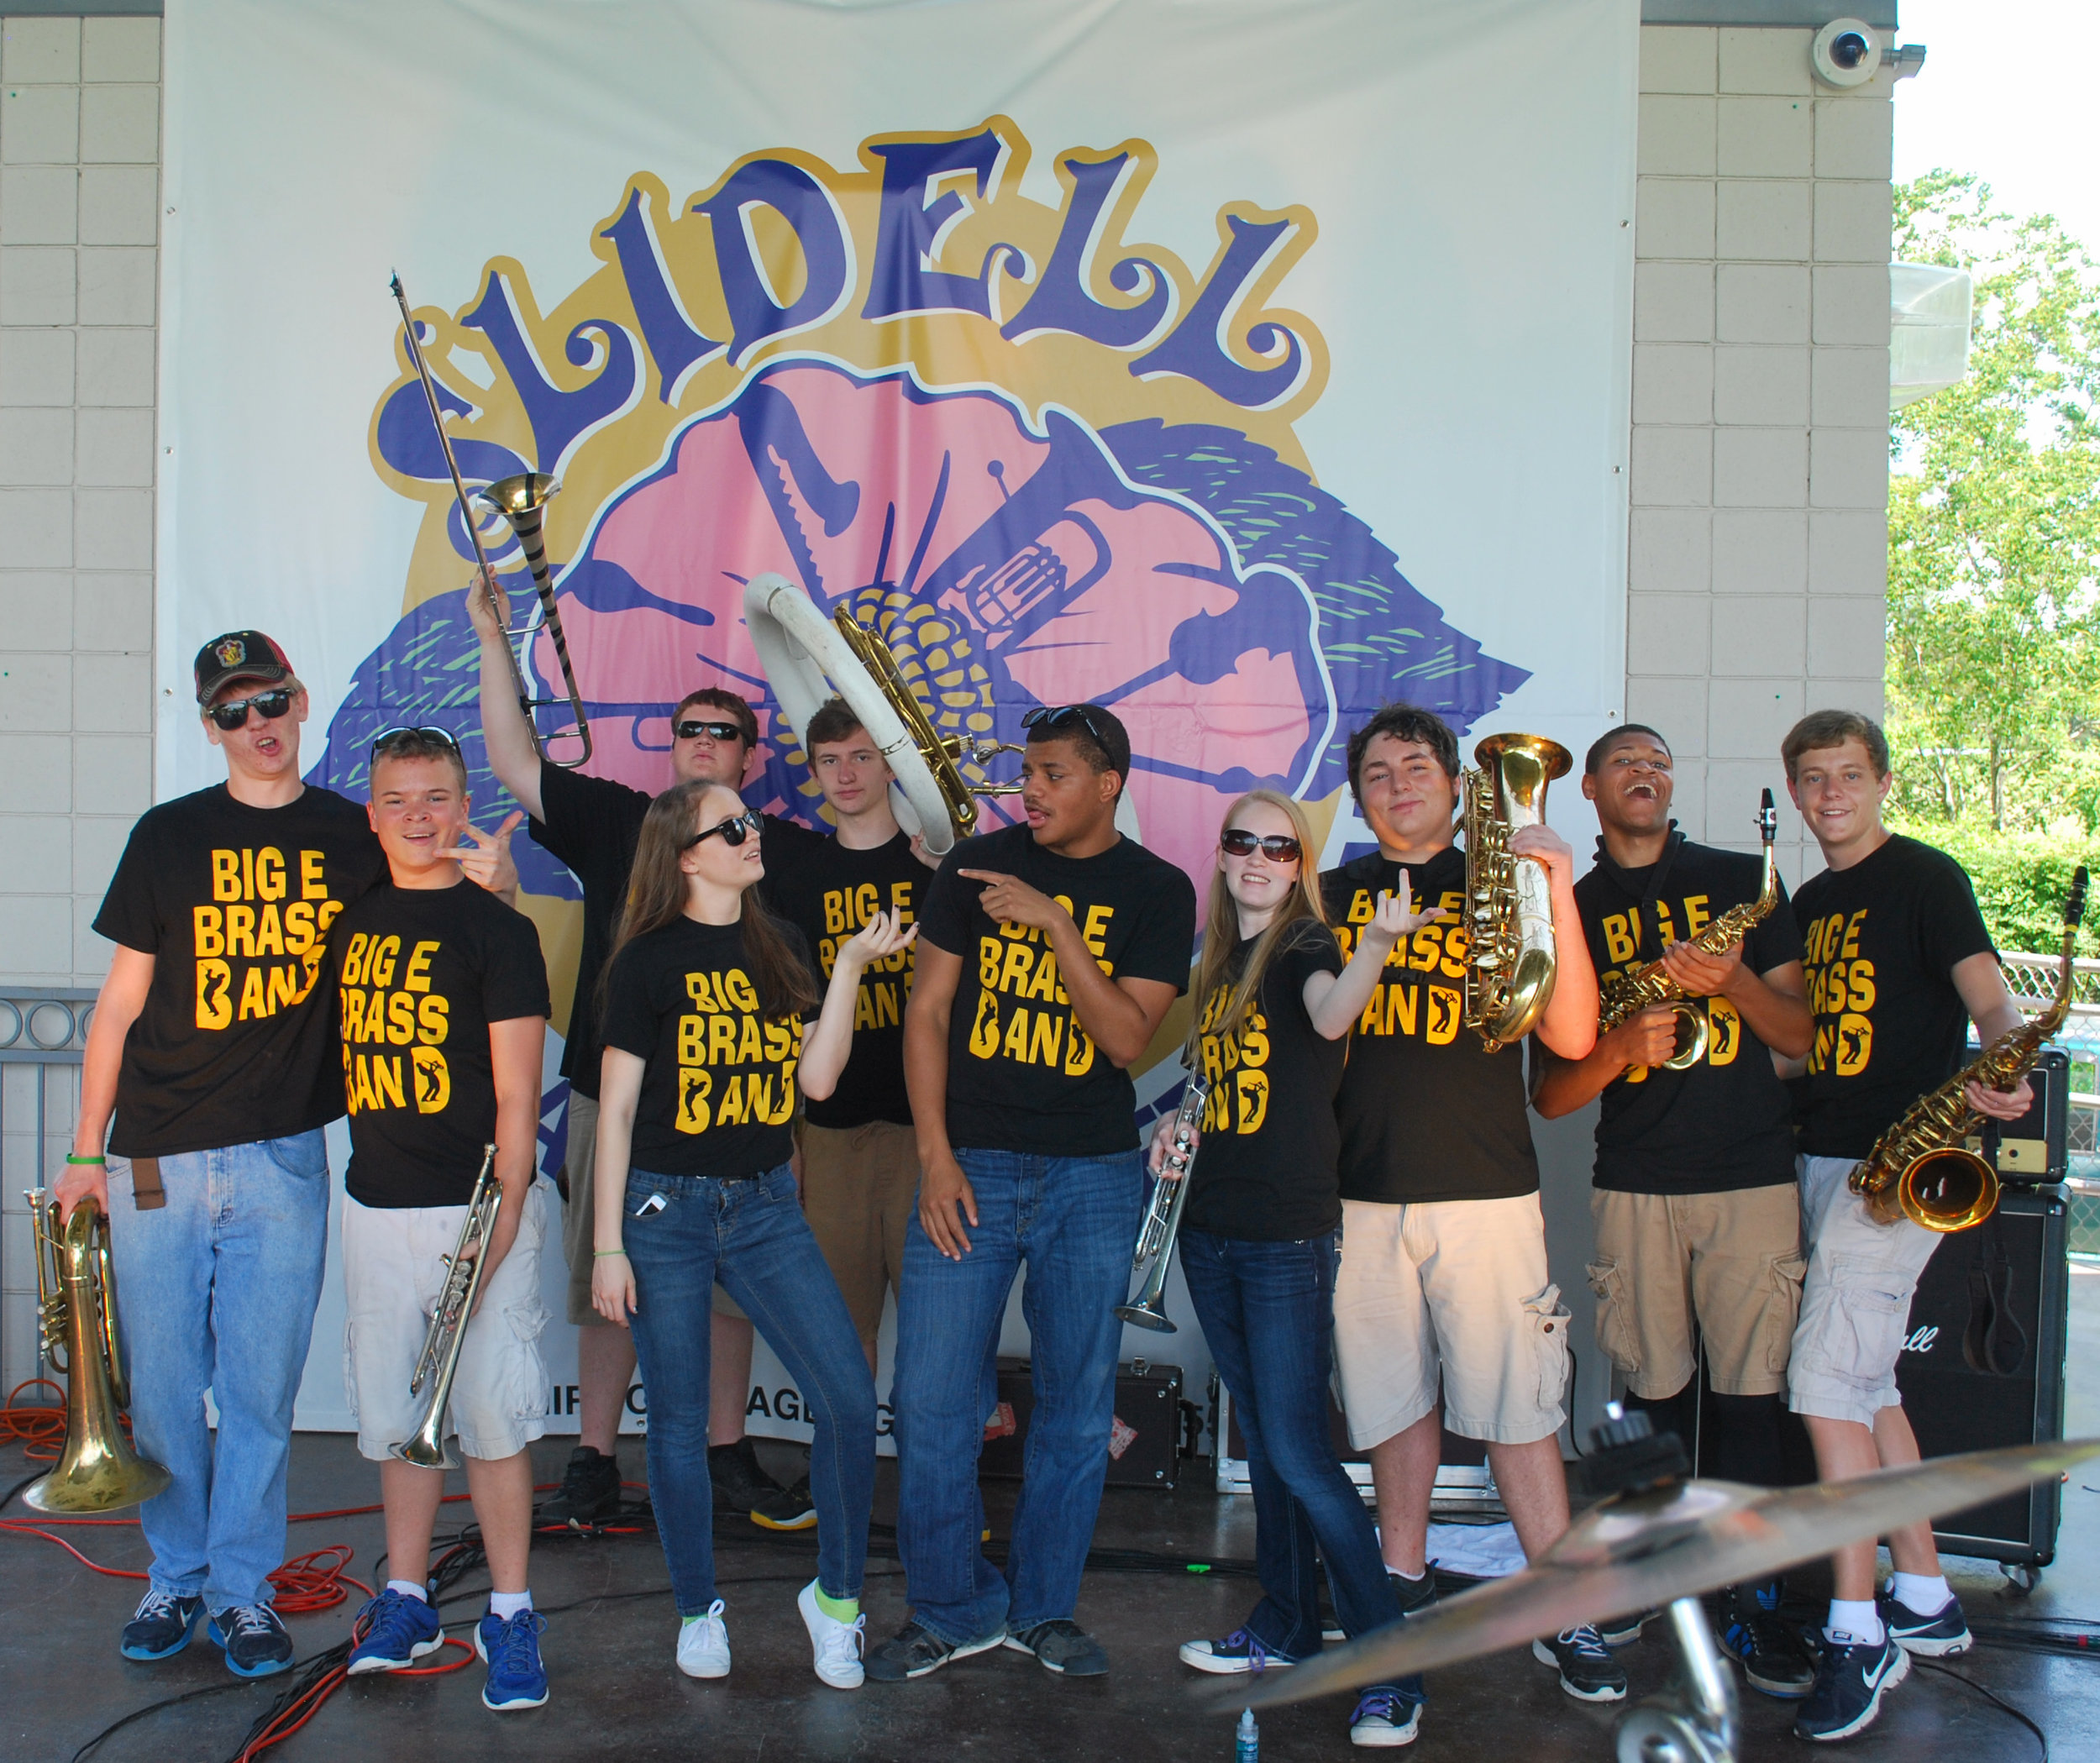 Big E Brass Band; a group of high school student musicians who performed at the Inaugural Slidell Jazz and Blues Festival.